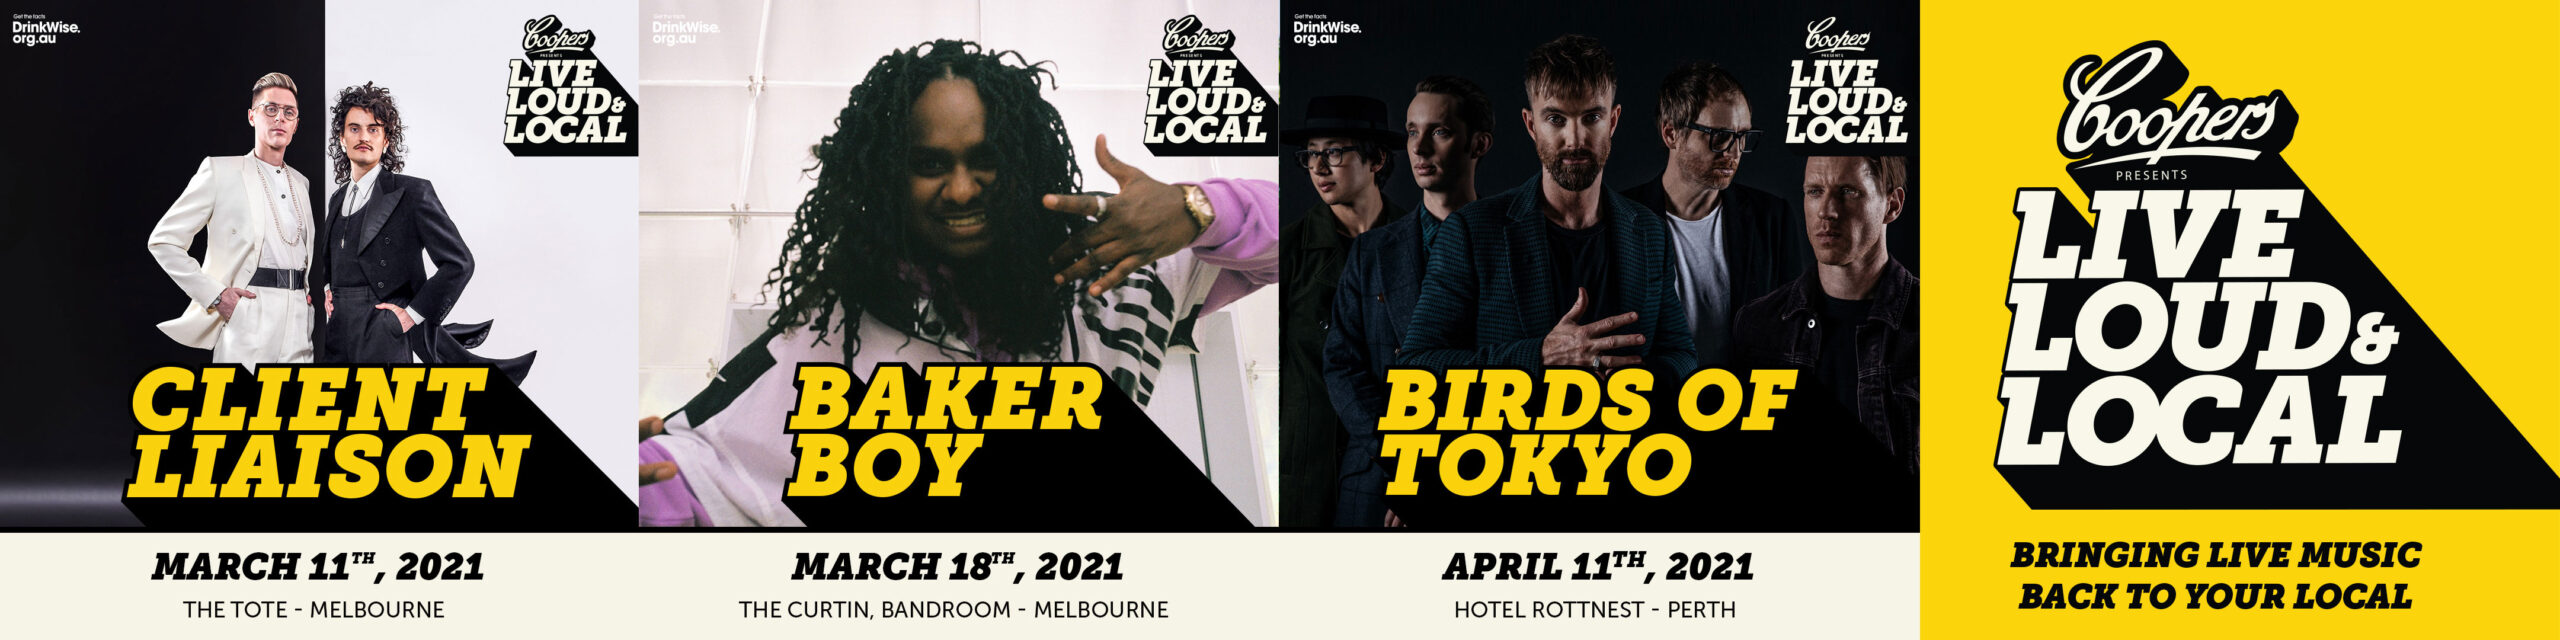 COOPERS & LIVE NATION RETURN ONCE AGAIN WITH LIVE, LOUD AND LOCAL –CLIENT LIAISON, BAKER BOY AND BIRDS OF TOKYO ANNOUNCED FOR NEXT ROUND –